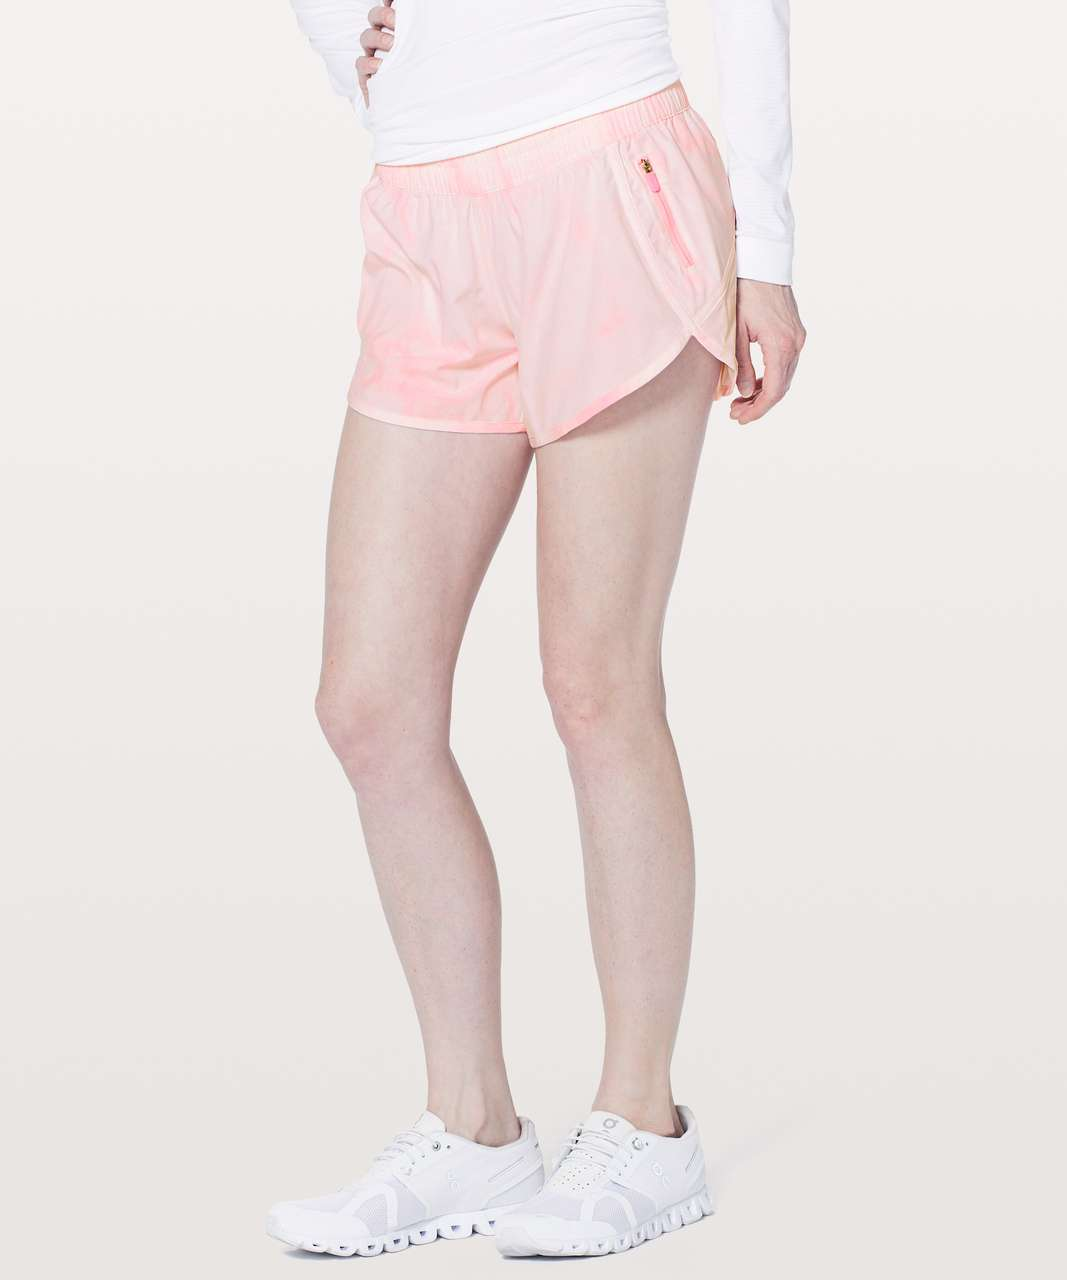 Lululemon Tracker Short V 4 Diamond Dye White Miami Pink Lulu Fanatics